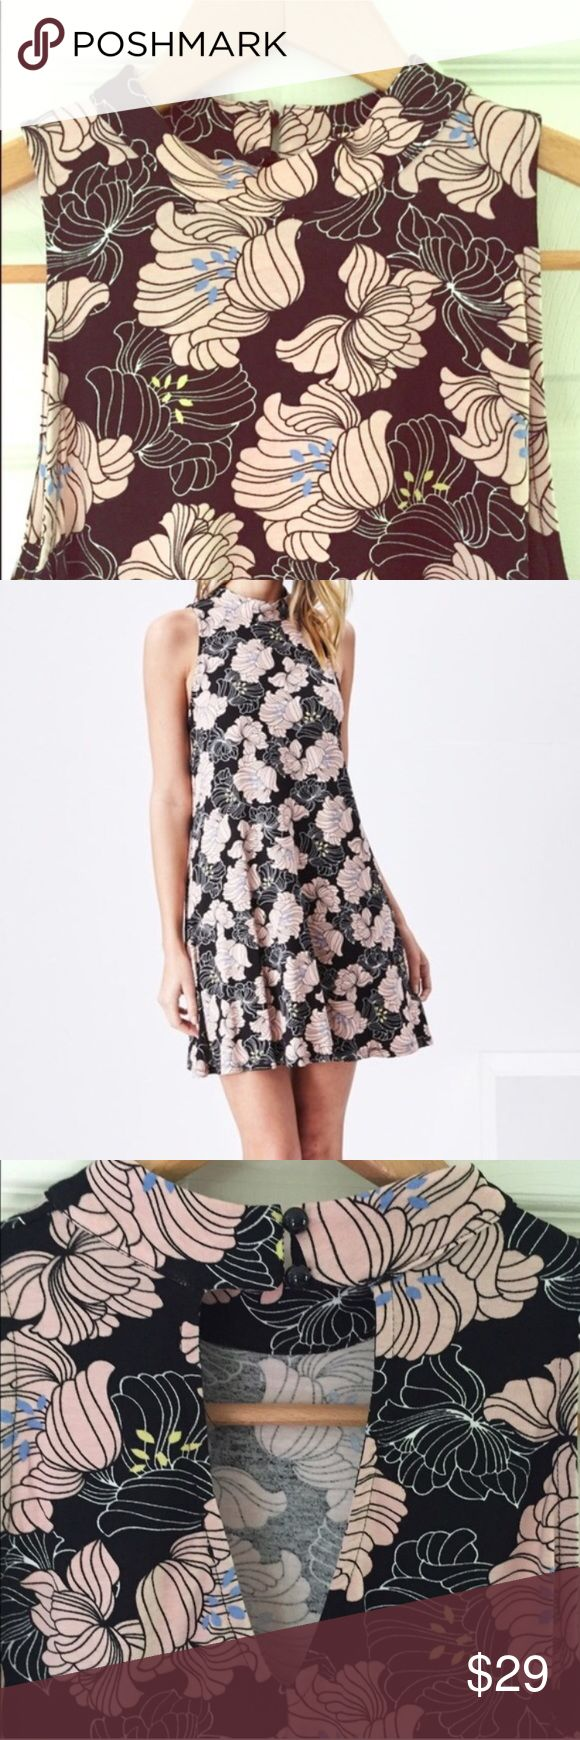 Floral Festival Dress XS/S Lightweight mini dress with high collar and pretty back detail with button closure. Very flowy and roomy in the hips. Great dress, (it also machine washes very well)! Unlined but not sheer. I wear mine with leggings. I wear a small and I am a size 6, but I think I could easily wear the XS as well. Smoke-free home. 95% Rayon, 5% Span. *📷 photo used with permission from Sadie and Sage* Sadie & Sage Dresses